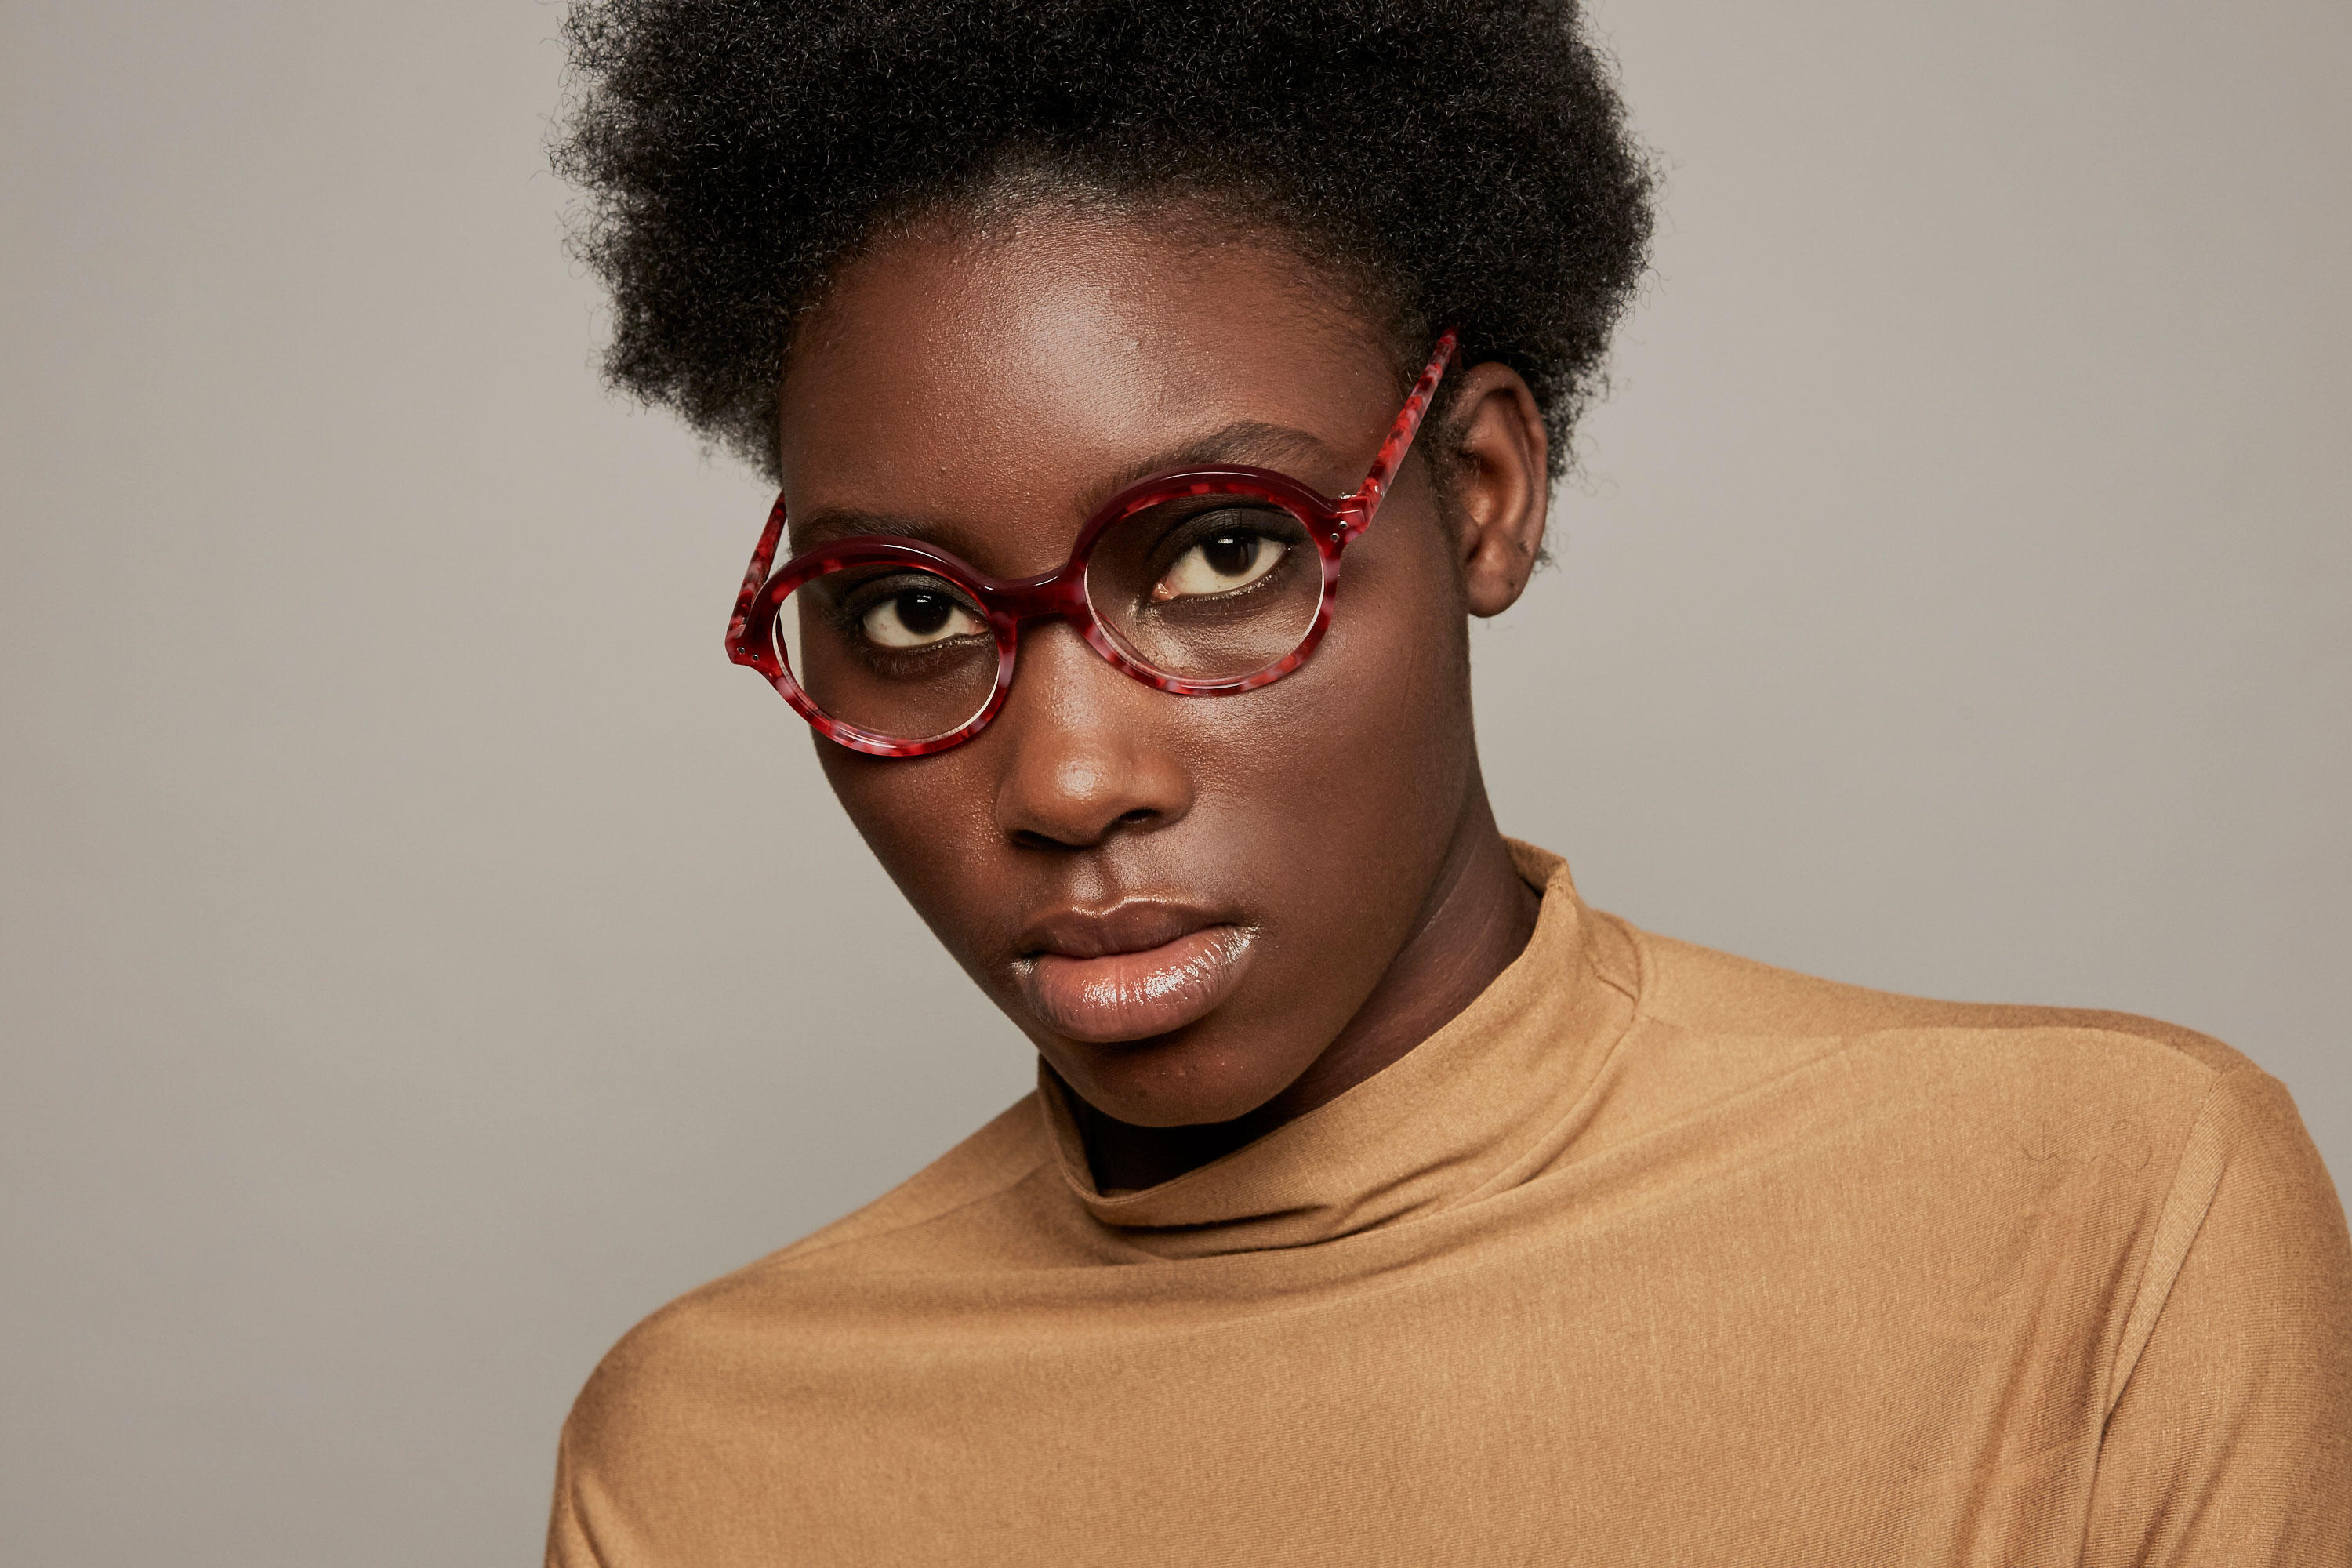 Dalston acetate rounded red sunglasses by GIGI Studios